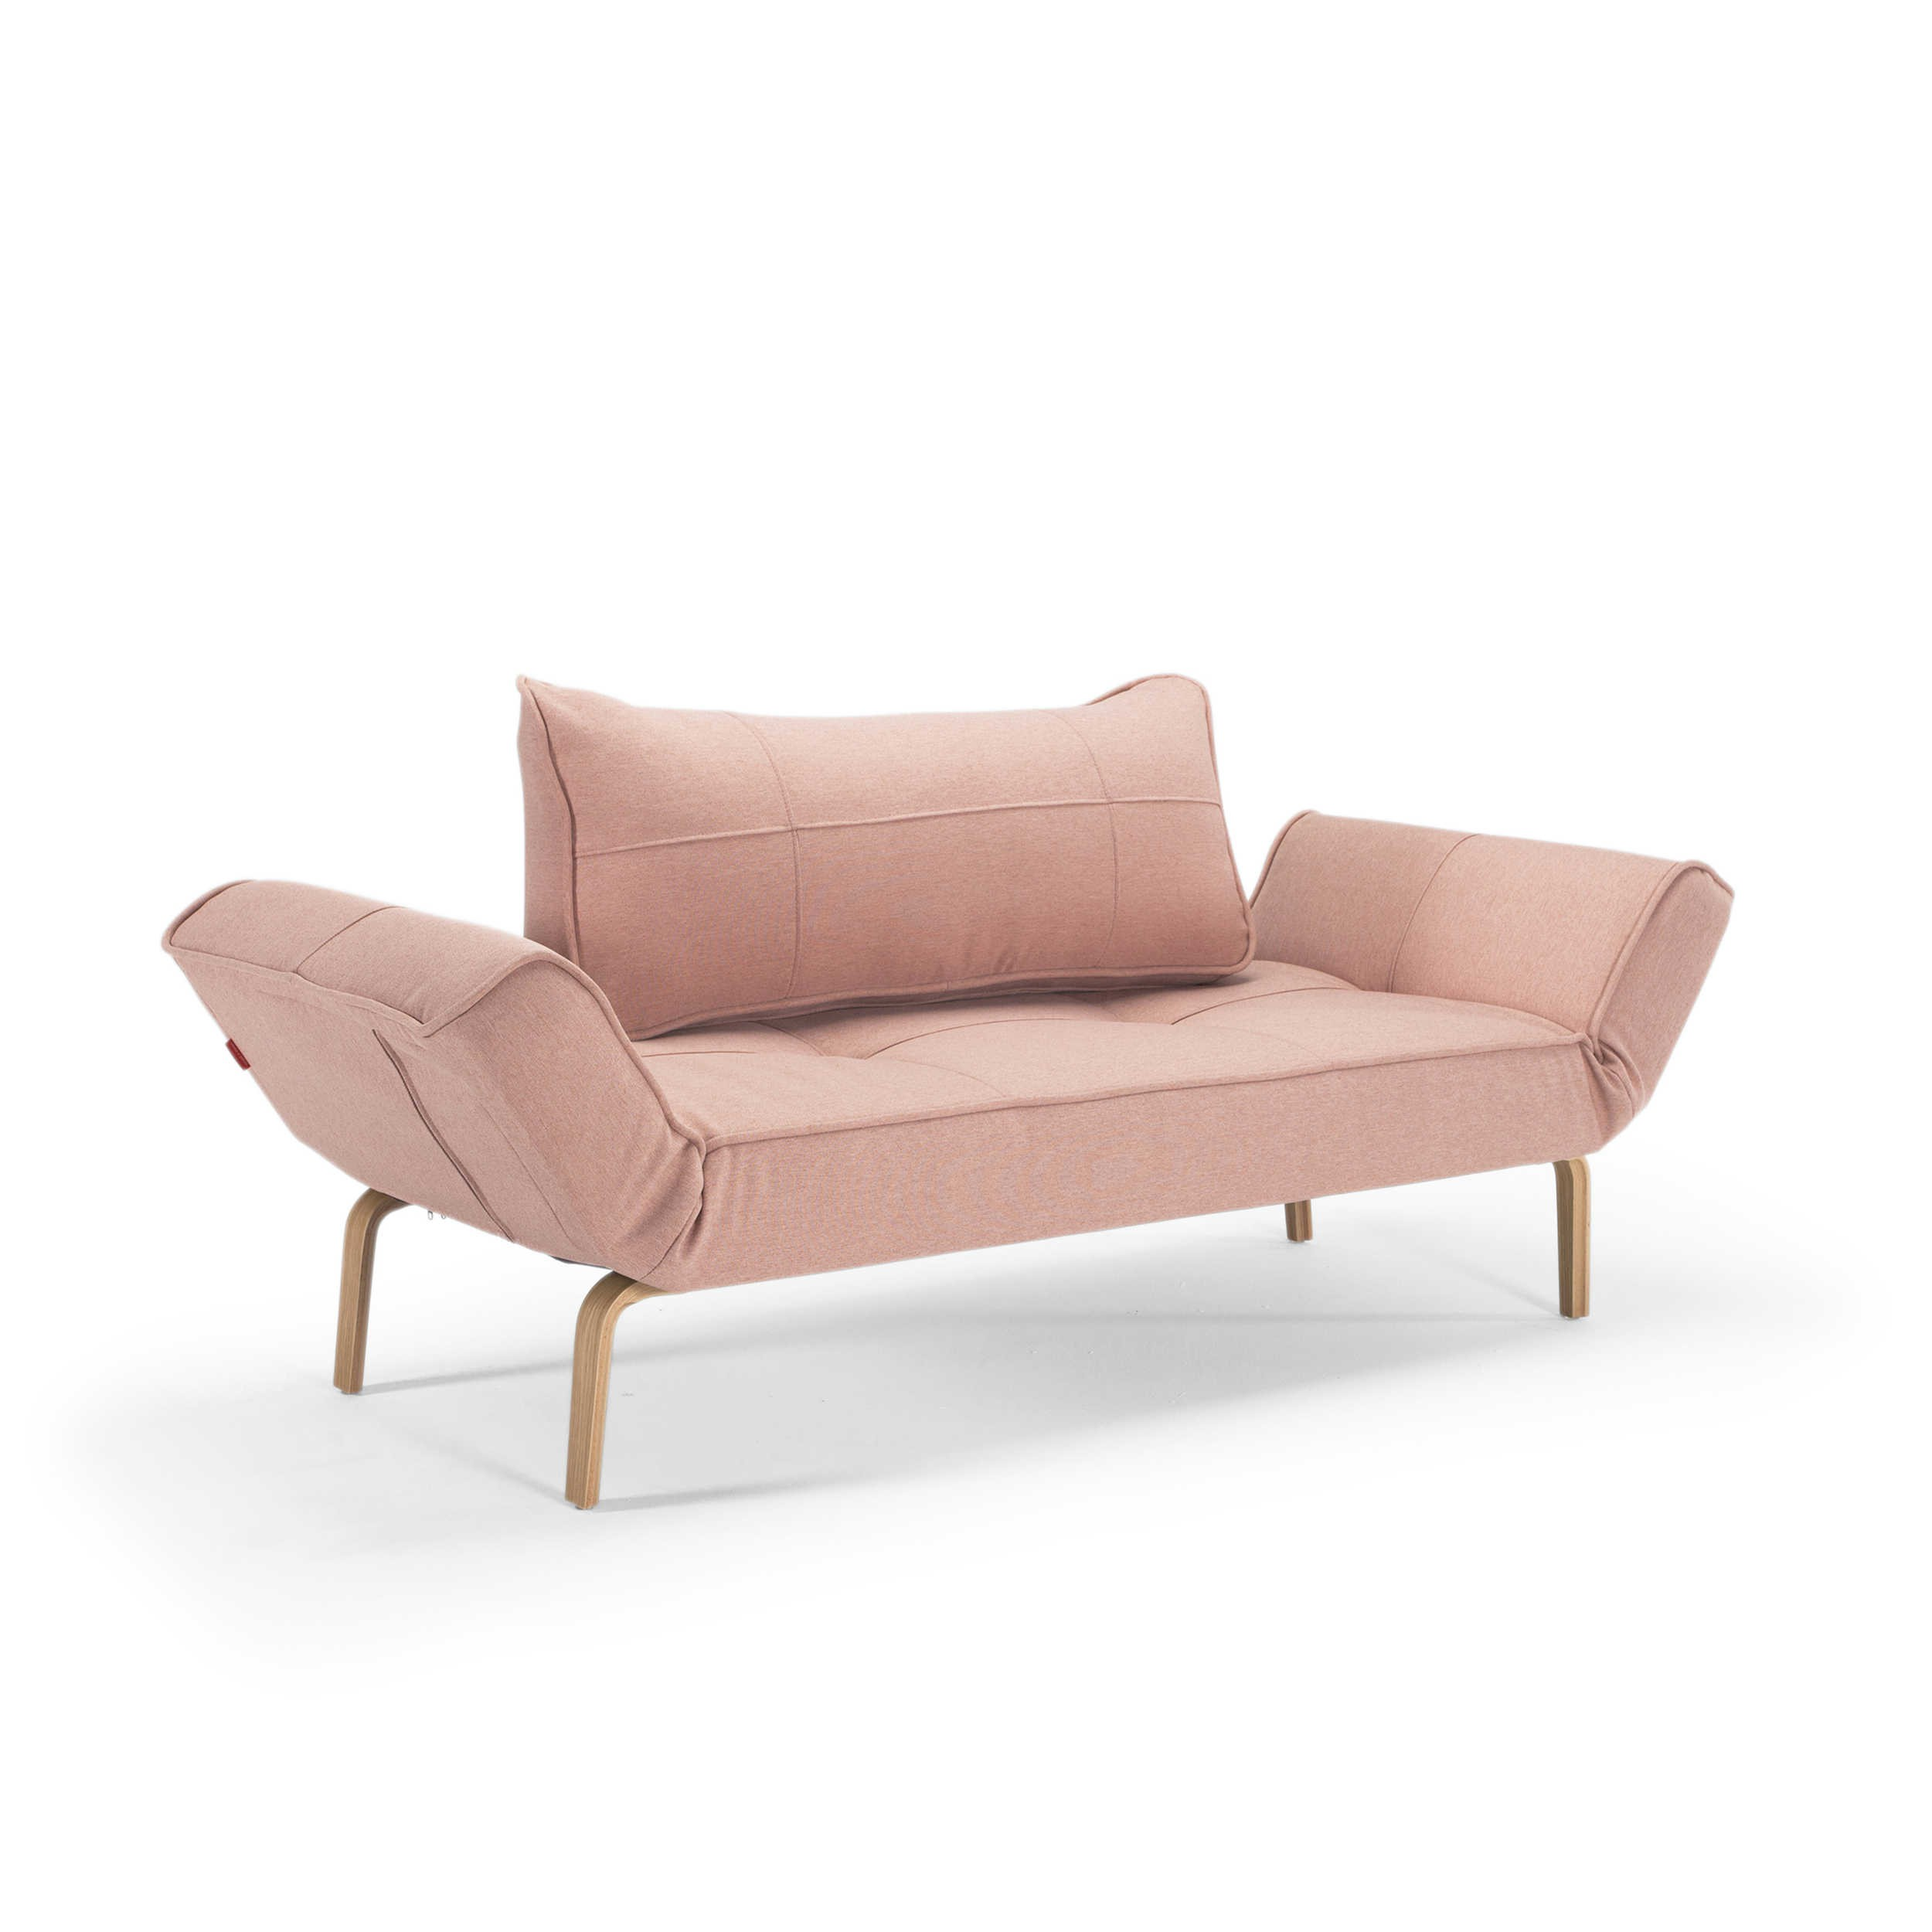 innovation schlafsofa zeal bow rosa stoff online kaufen bei woonio. Black Bedroom Furniture Sets. Home Design Ideas